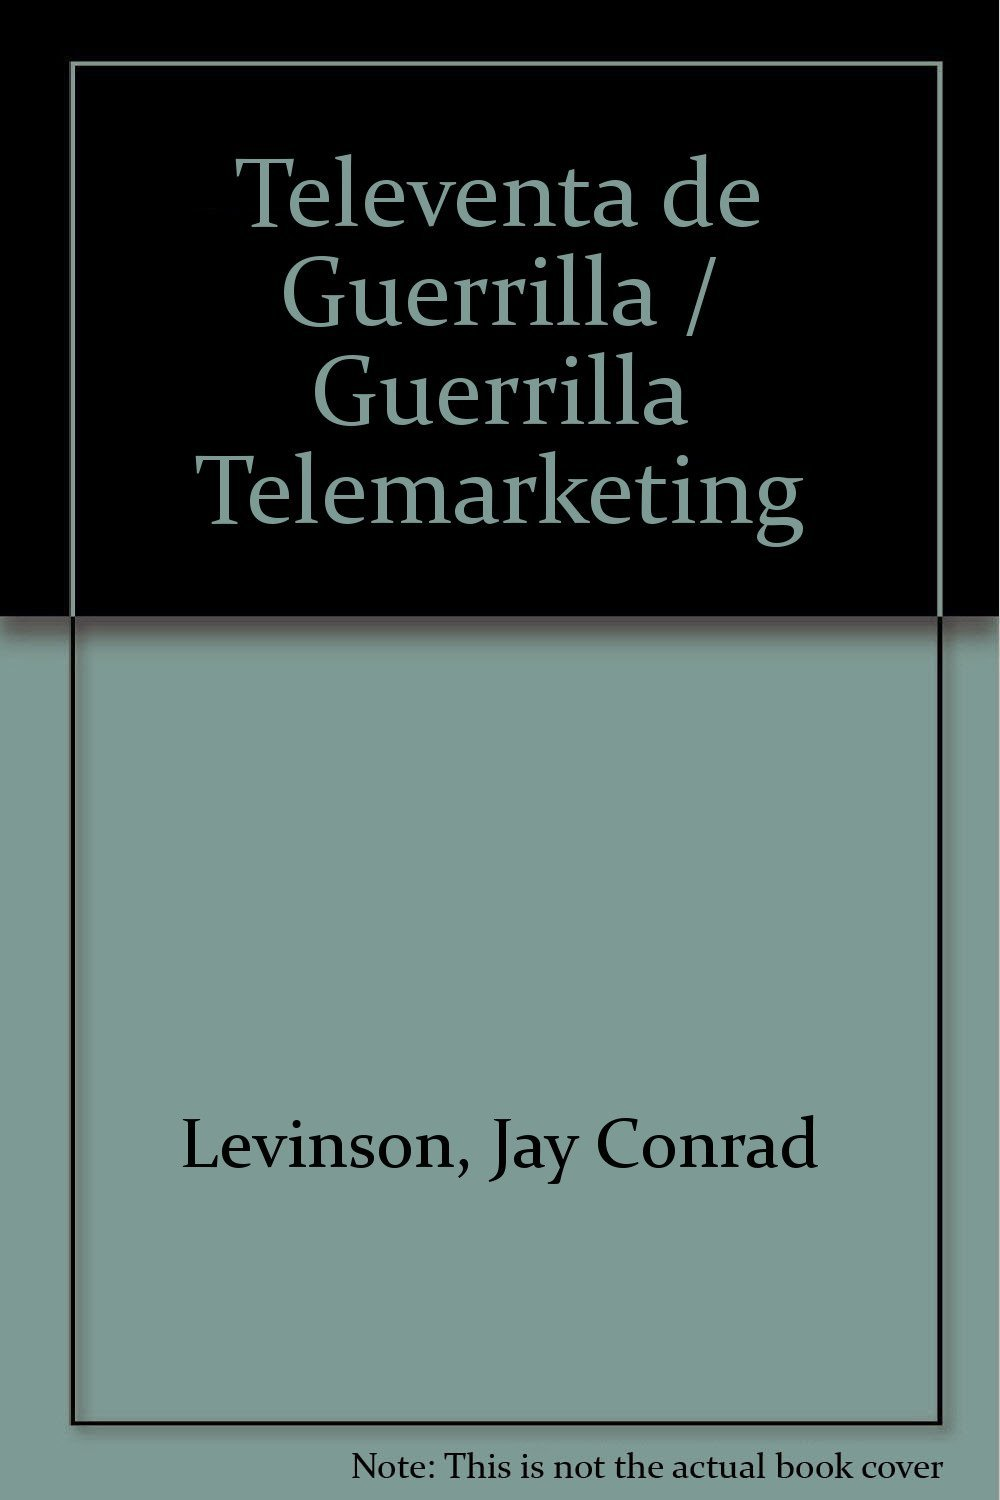 Televenta de Guerrilla / Guerrilla Telemarketing (Spanish Edition)